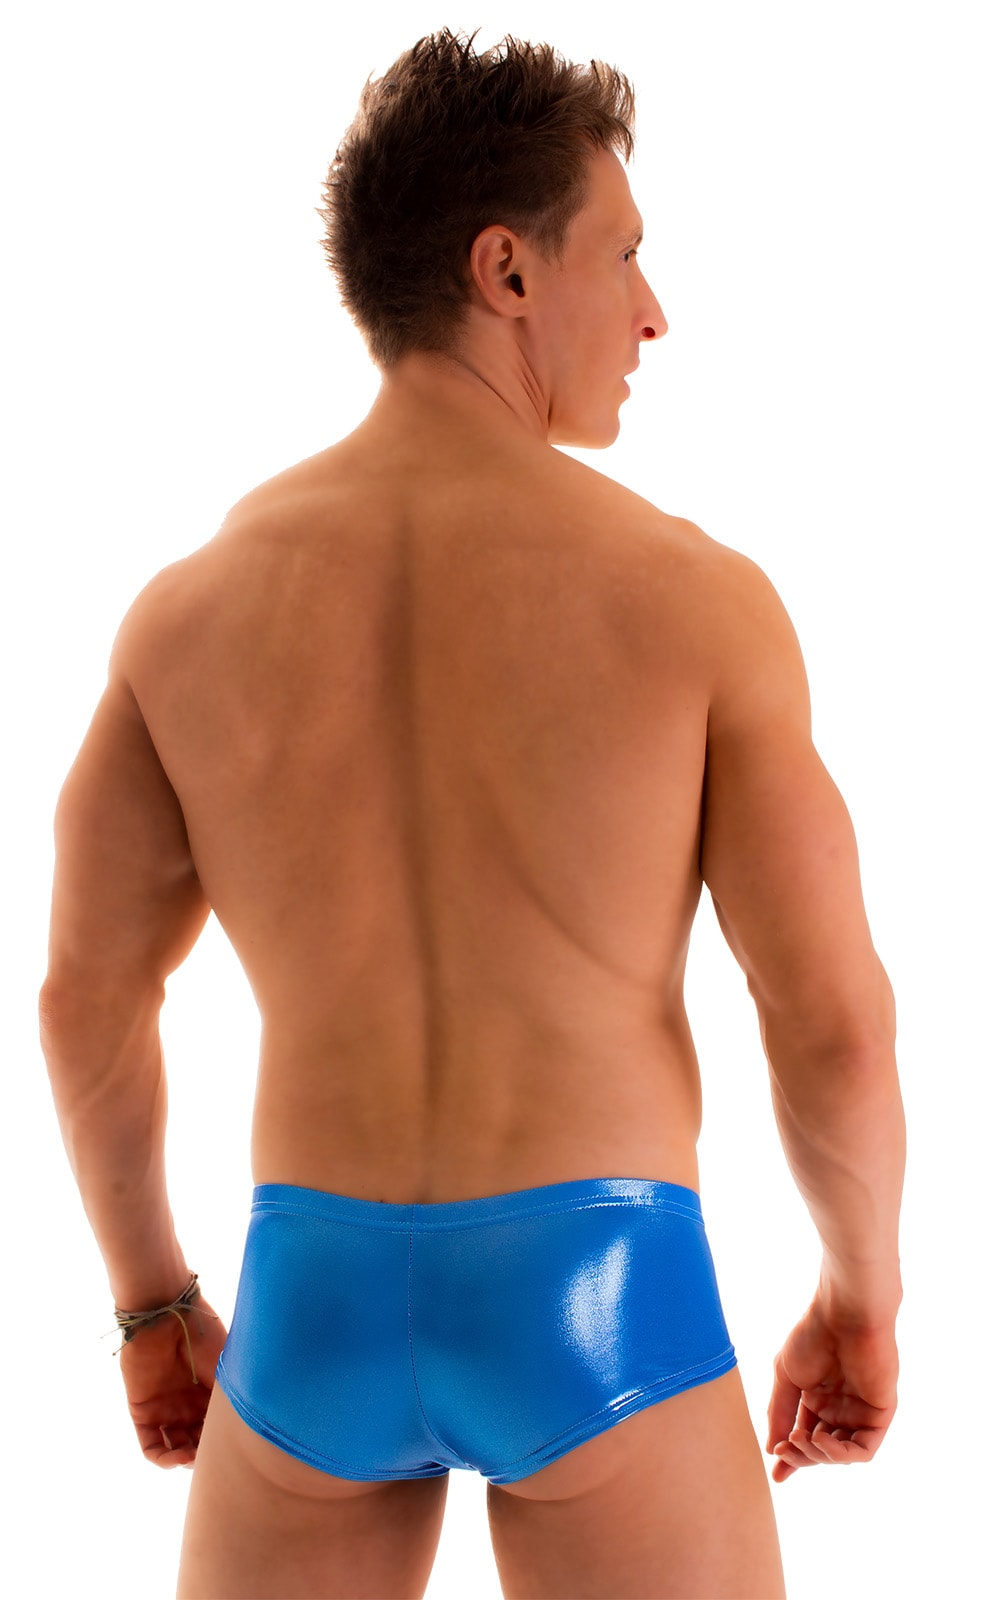 Pouch Enhanced Micro Square Cut Swim Trunks in Ice Karma Electric Blue 2